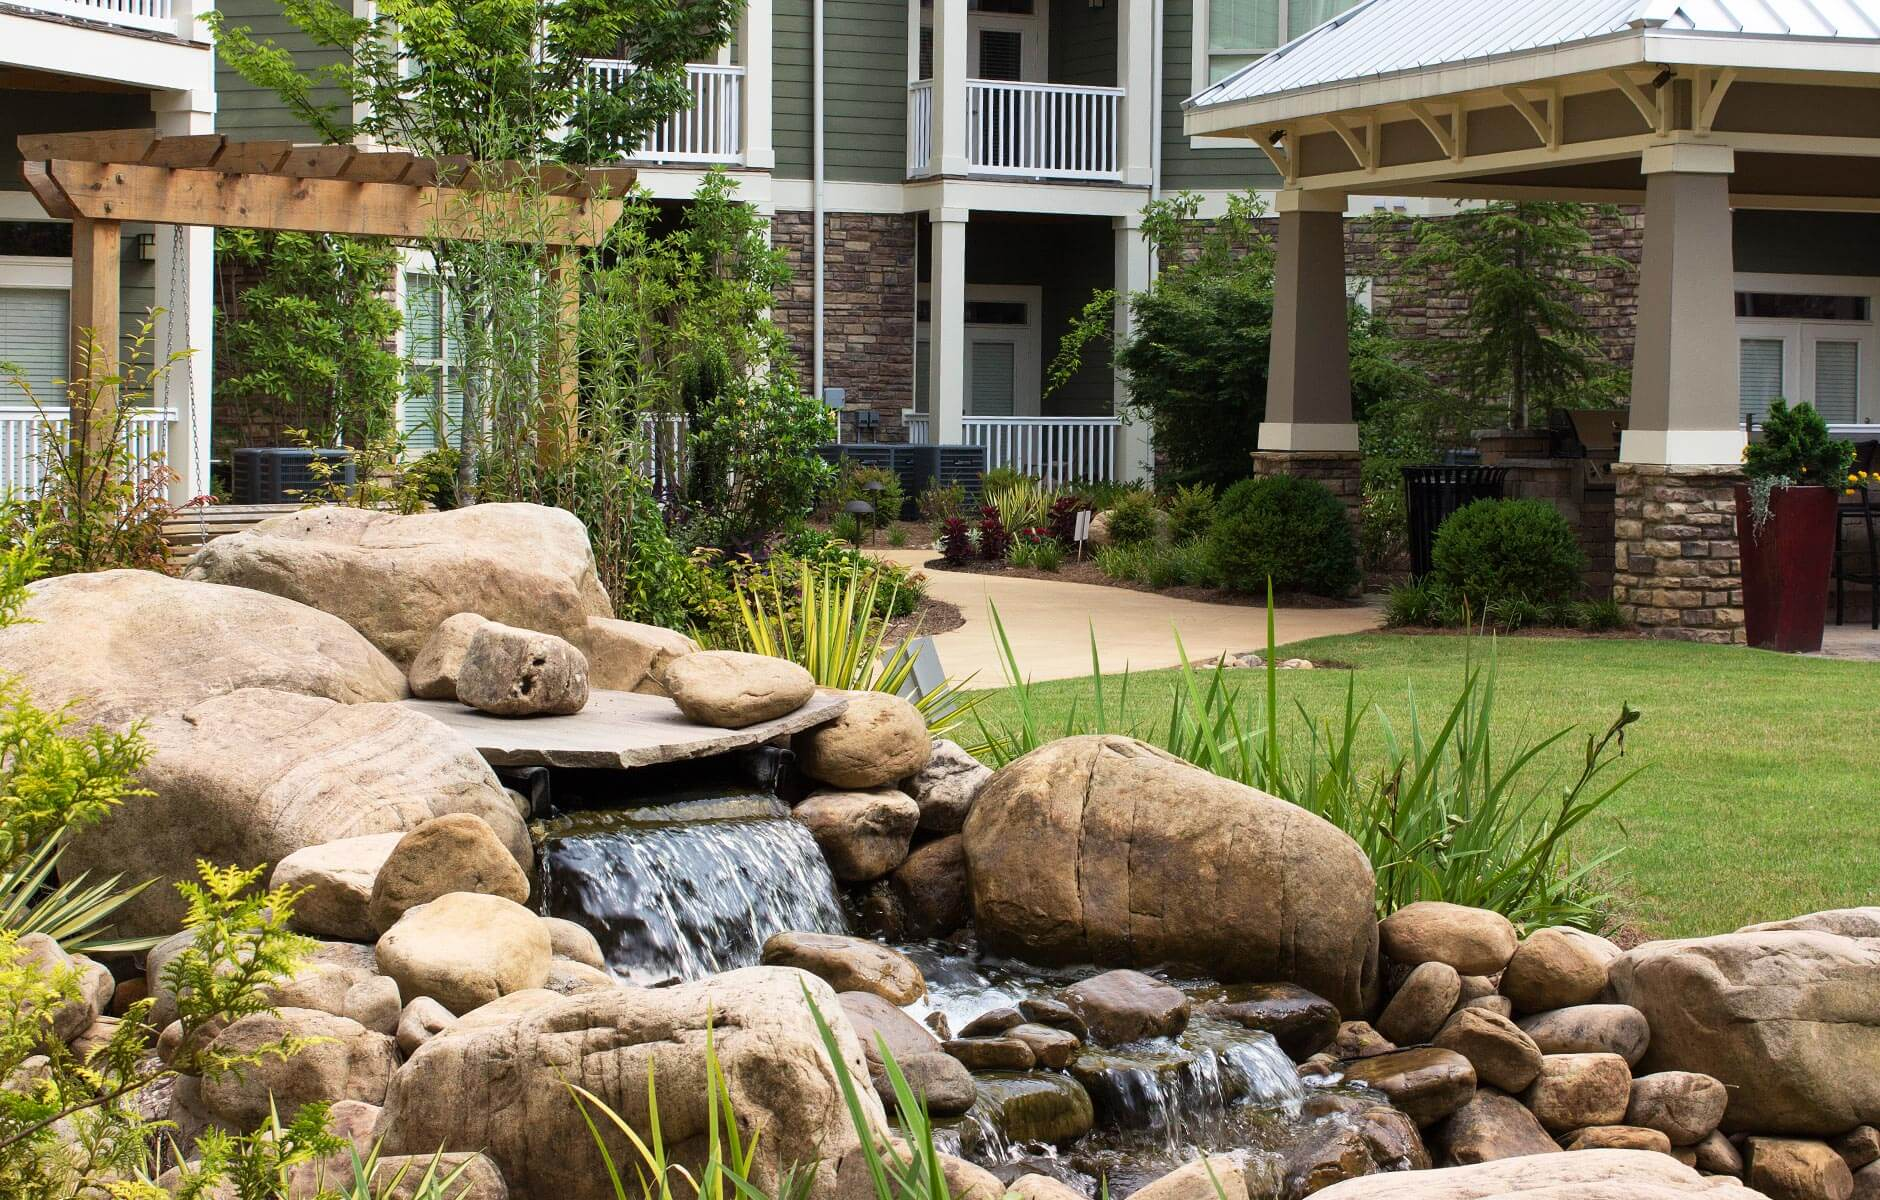 Green grass and a flowing fountain add charm to this multifamily property